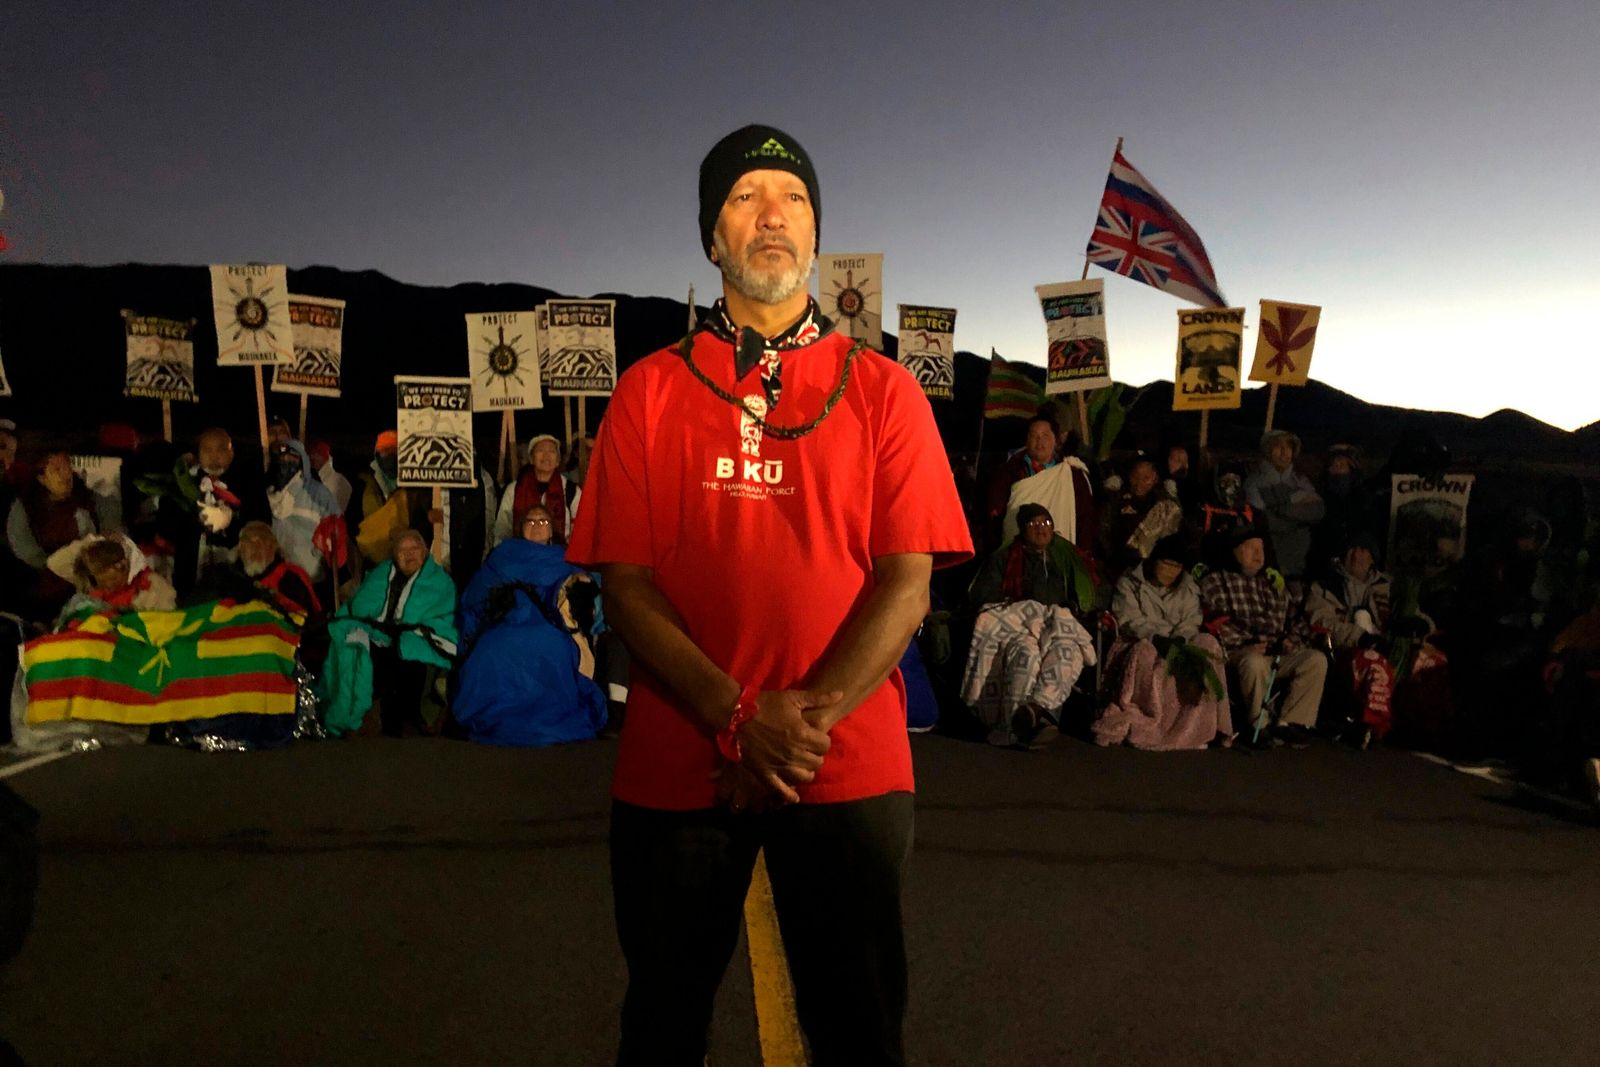 Dexter Kaiama, center, joins demonstrators gathered to block a road at the base of Hawaii's tallest mountain, Monday, July 15, 2019, in Mauna Kea, Hawaii, to protest the construction of a giant telescope on land that some Native Hawaiians consider sacred. (AP Photo/Caleb Jones)